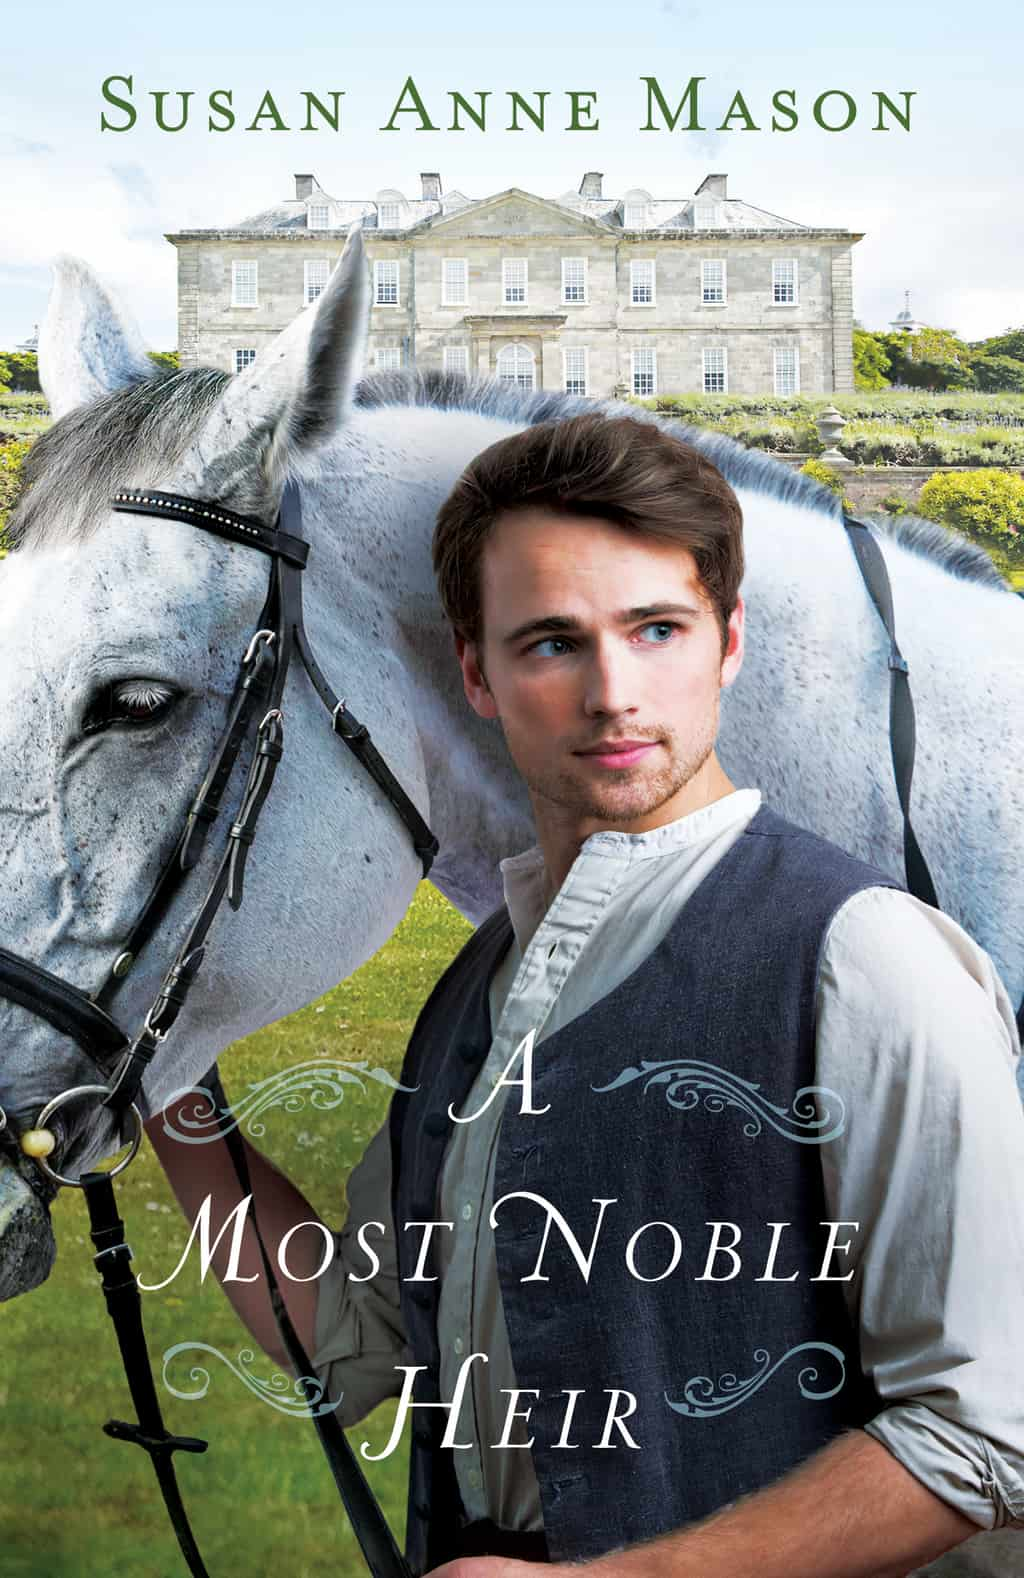 A Most Noble Heir by Susan Anne Mason